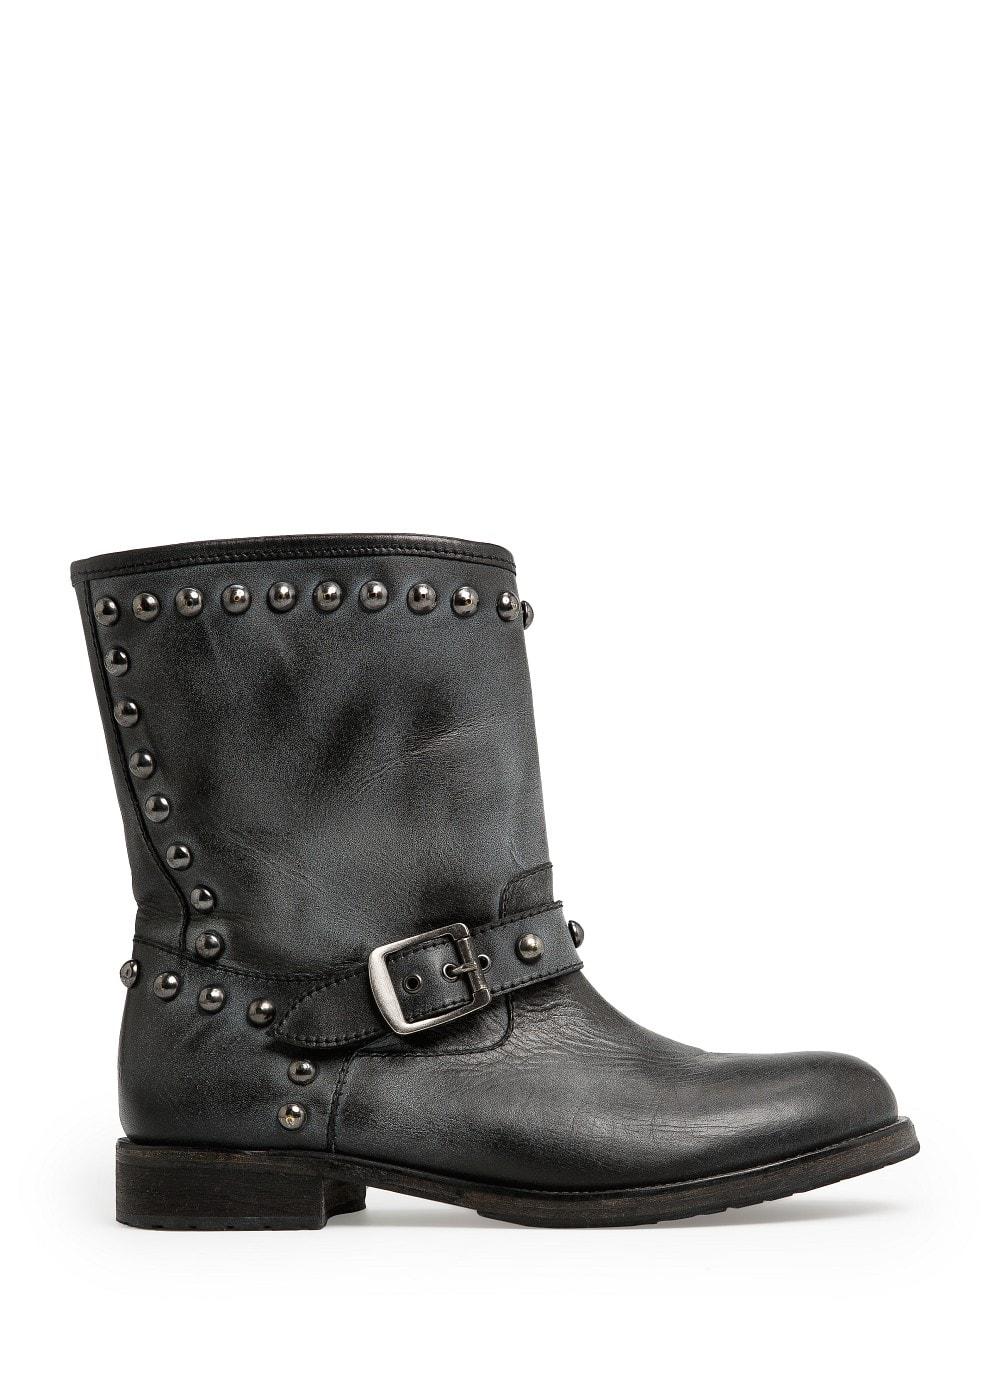 ROUNDED STUDS LEATHER BOOTS